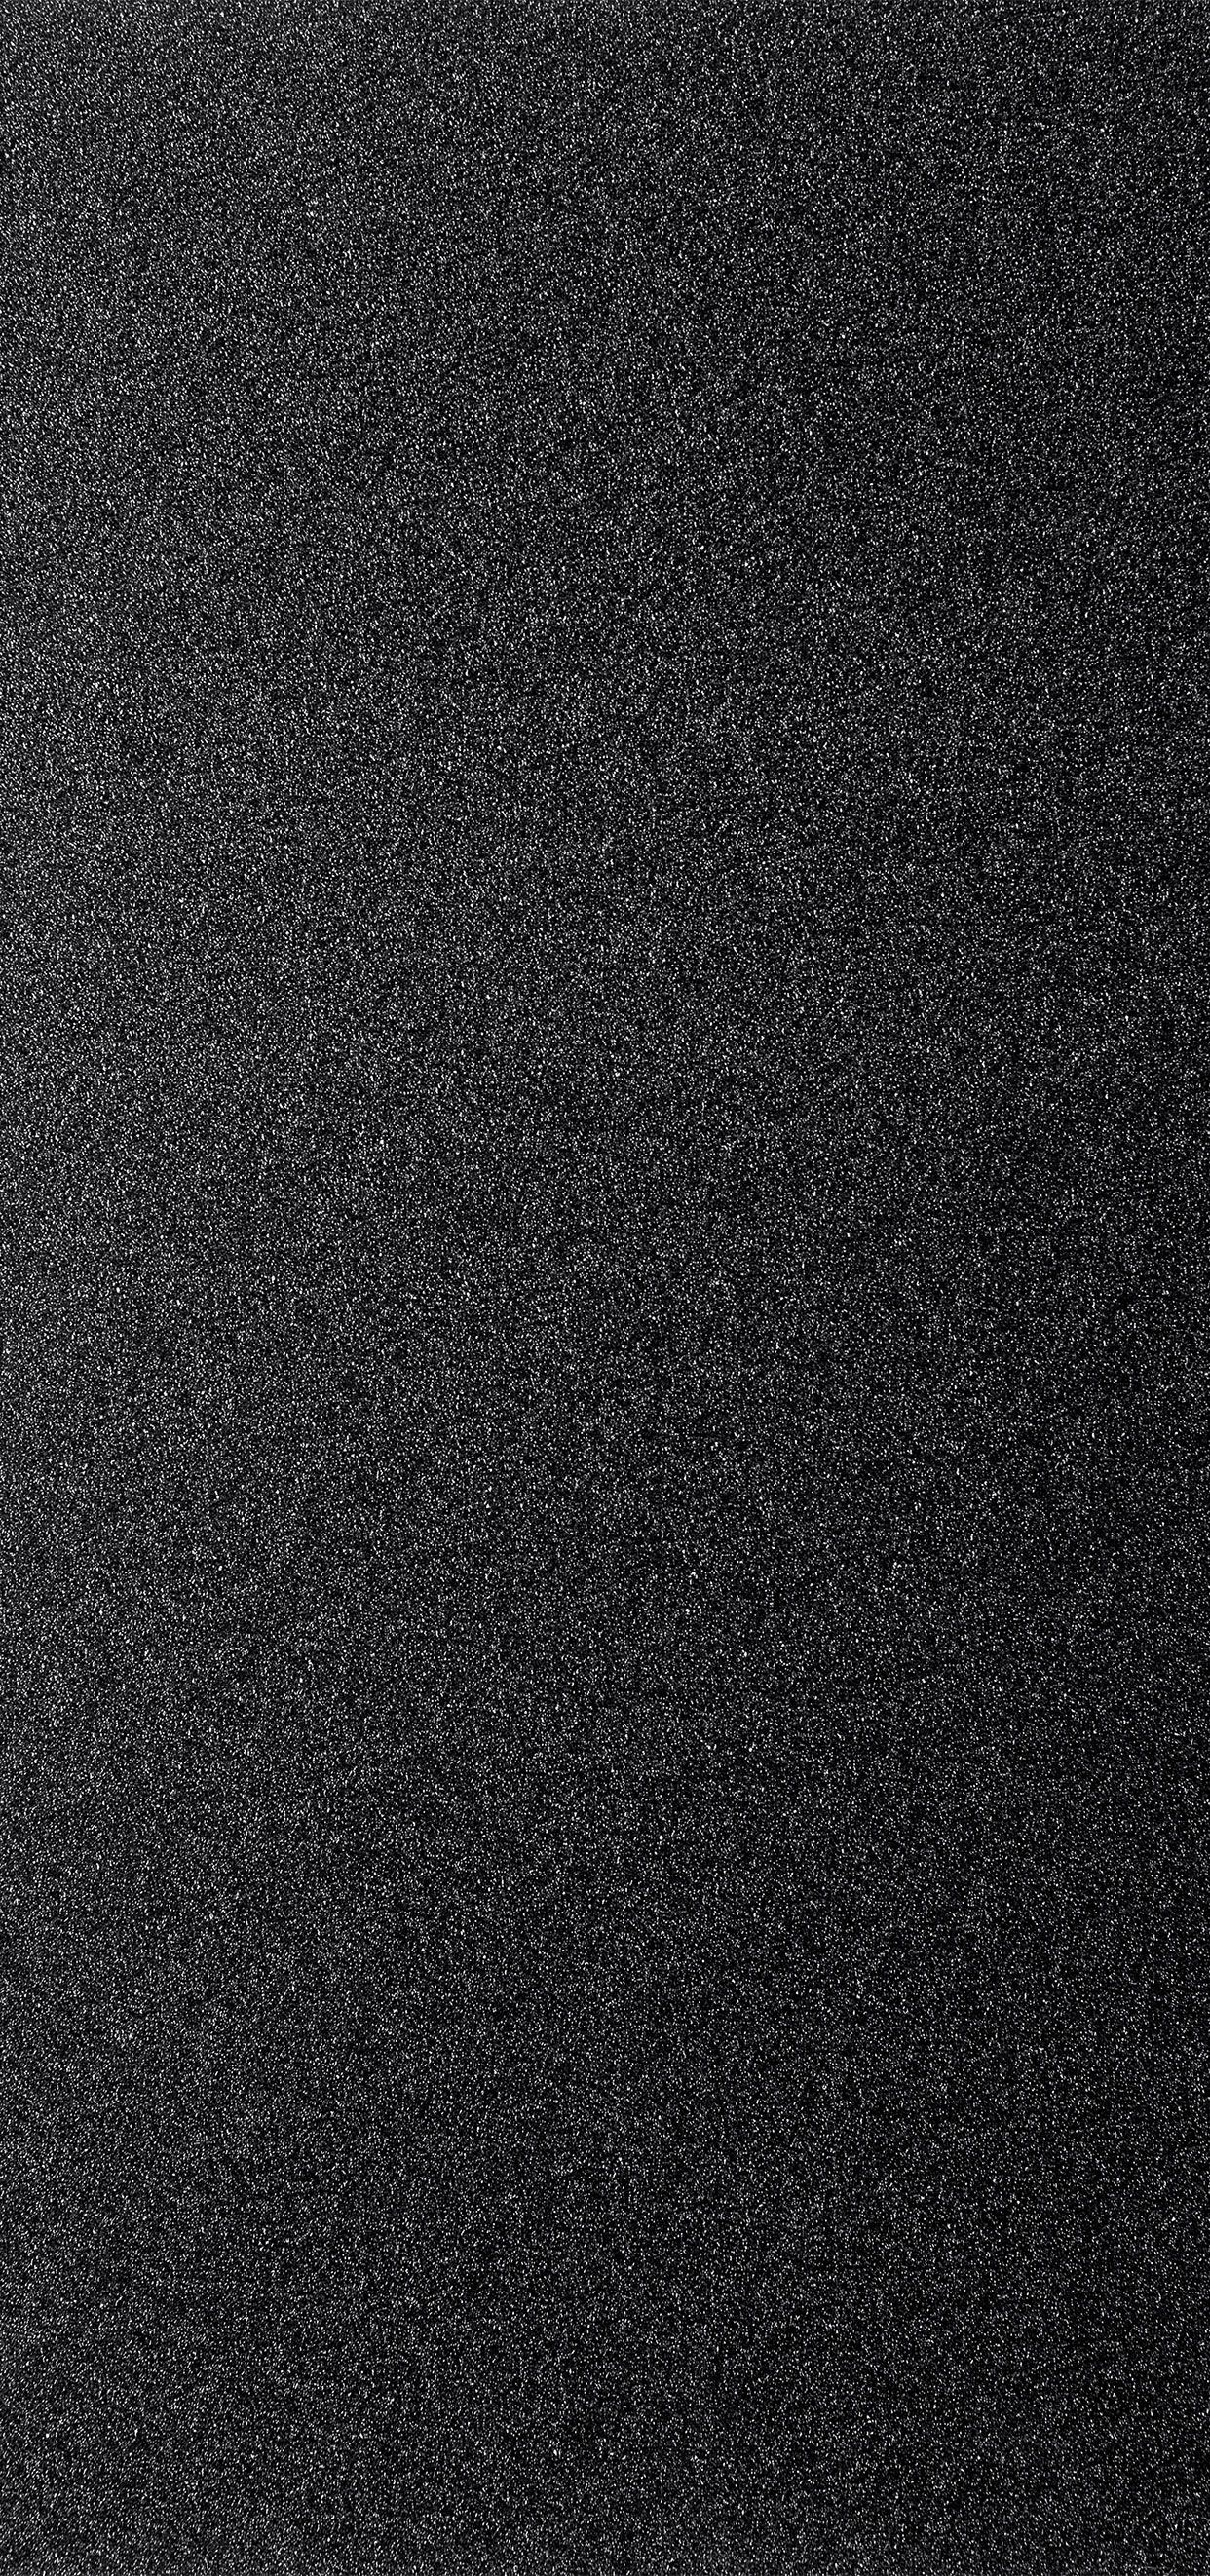 Black Glitter Iphone Wallpapers Top Free Black Glitter